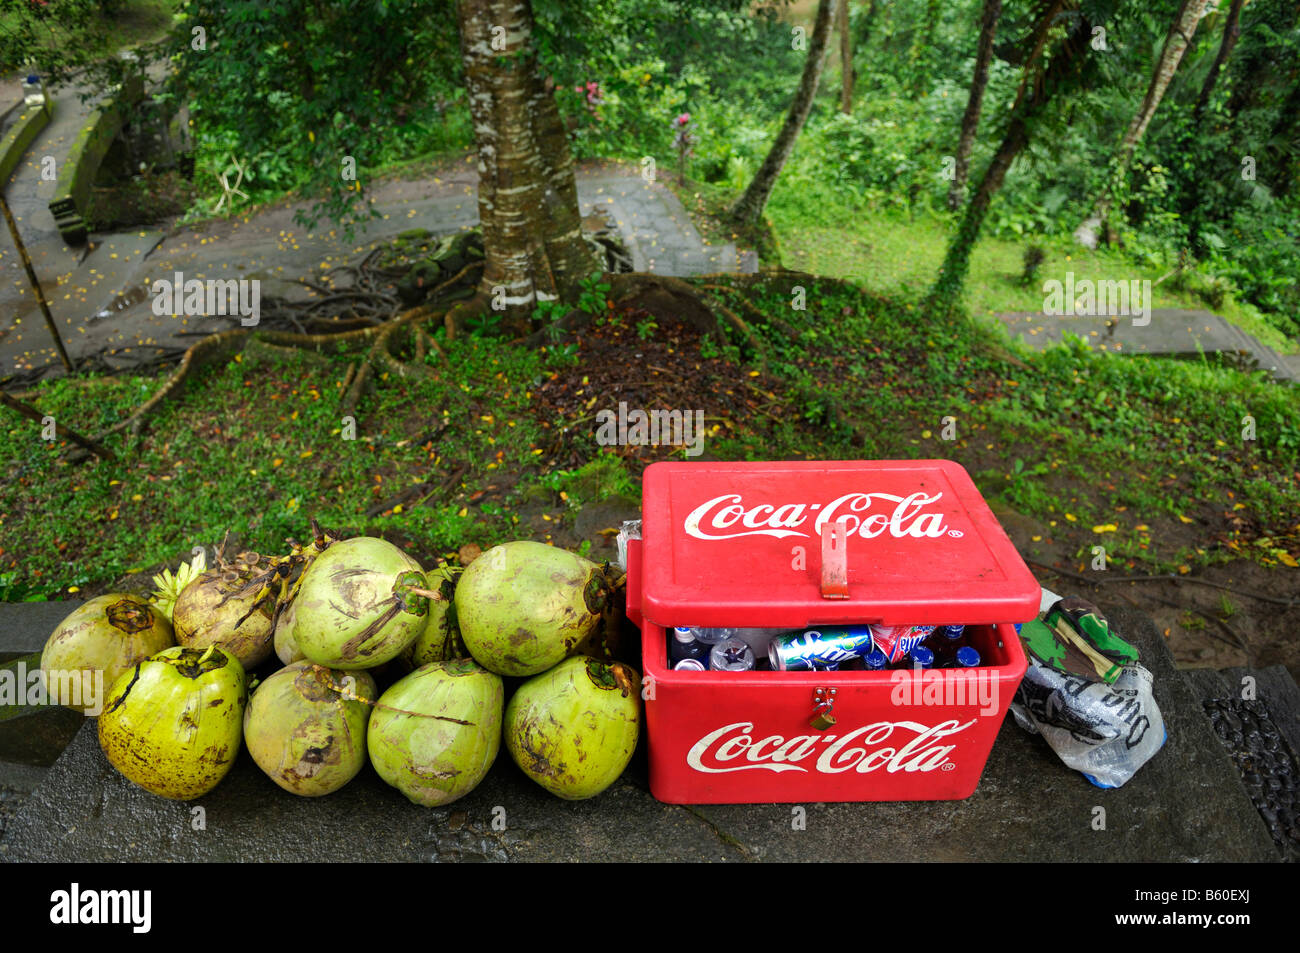 Special offer for drinks, coke or coconut, Ubud, Bali, Indonesia, Southeast Asia - Stock Image